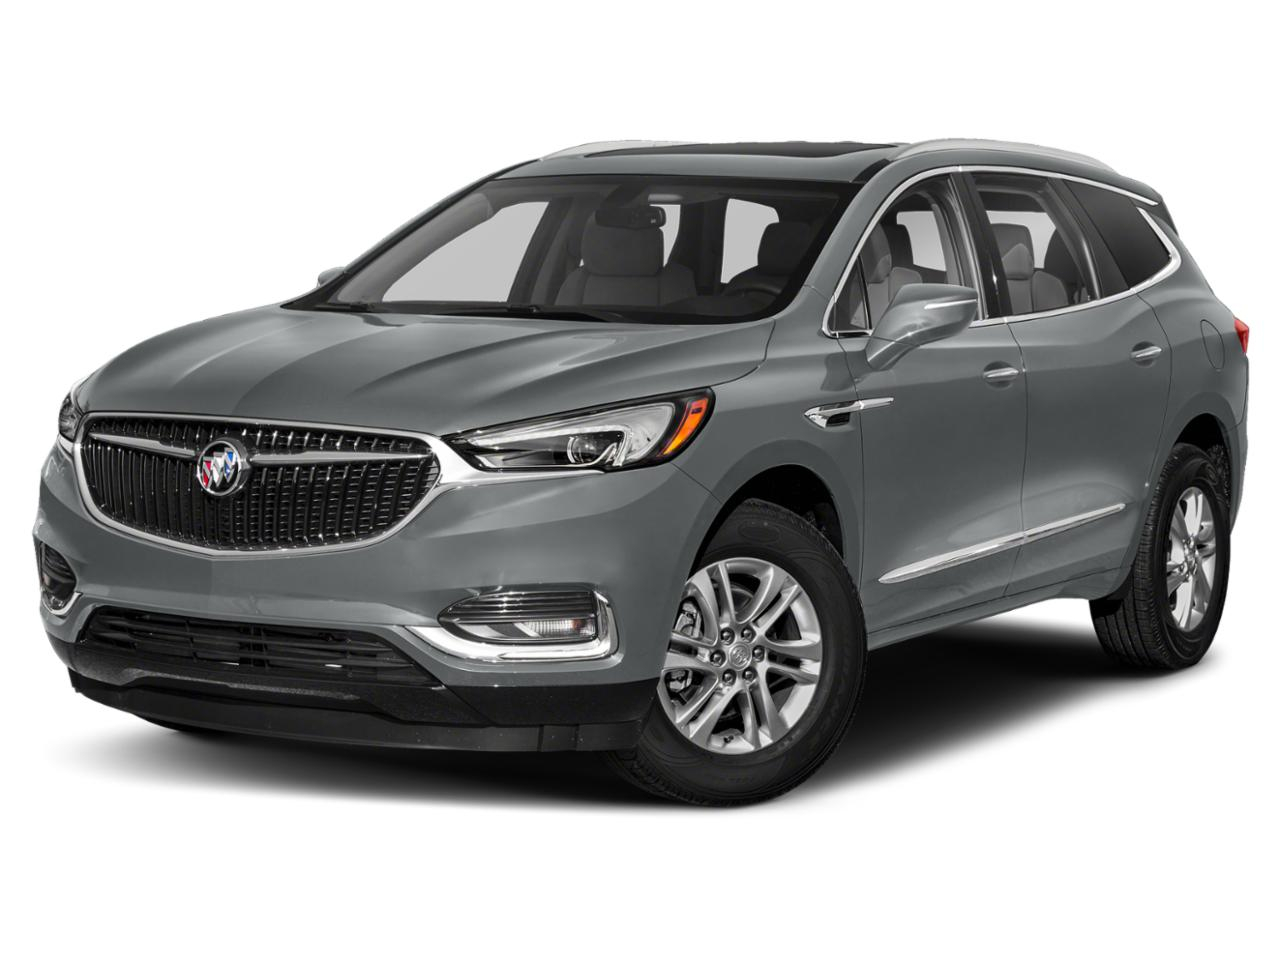 2020 Buick Enclave Avenir Awd In Norman, Ok | Stk# |Ferguson 2021 Buick Enclave Avenir Owners Manual, Pictures, Colors